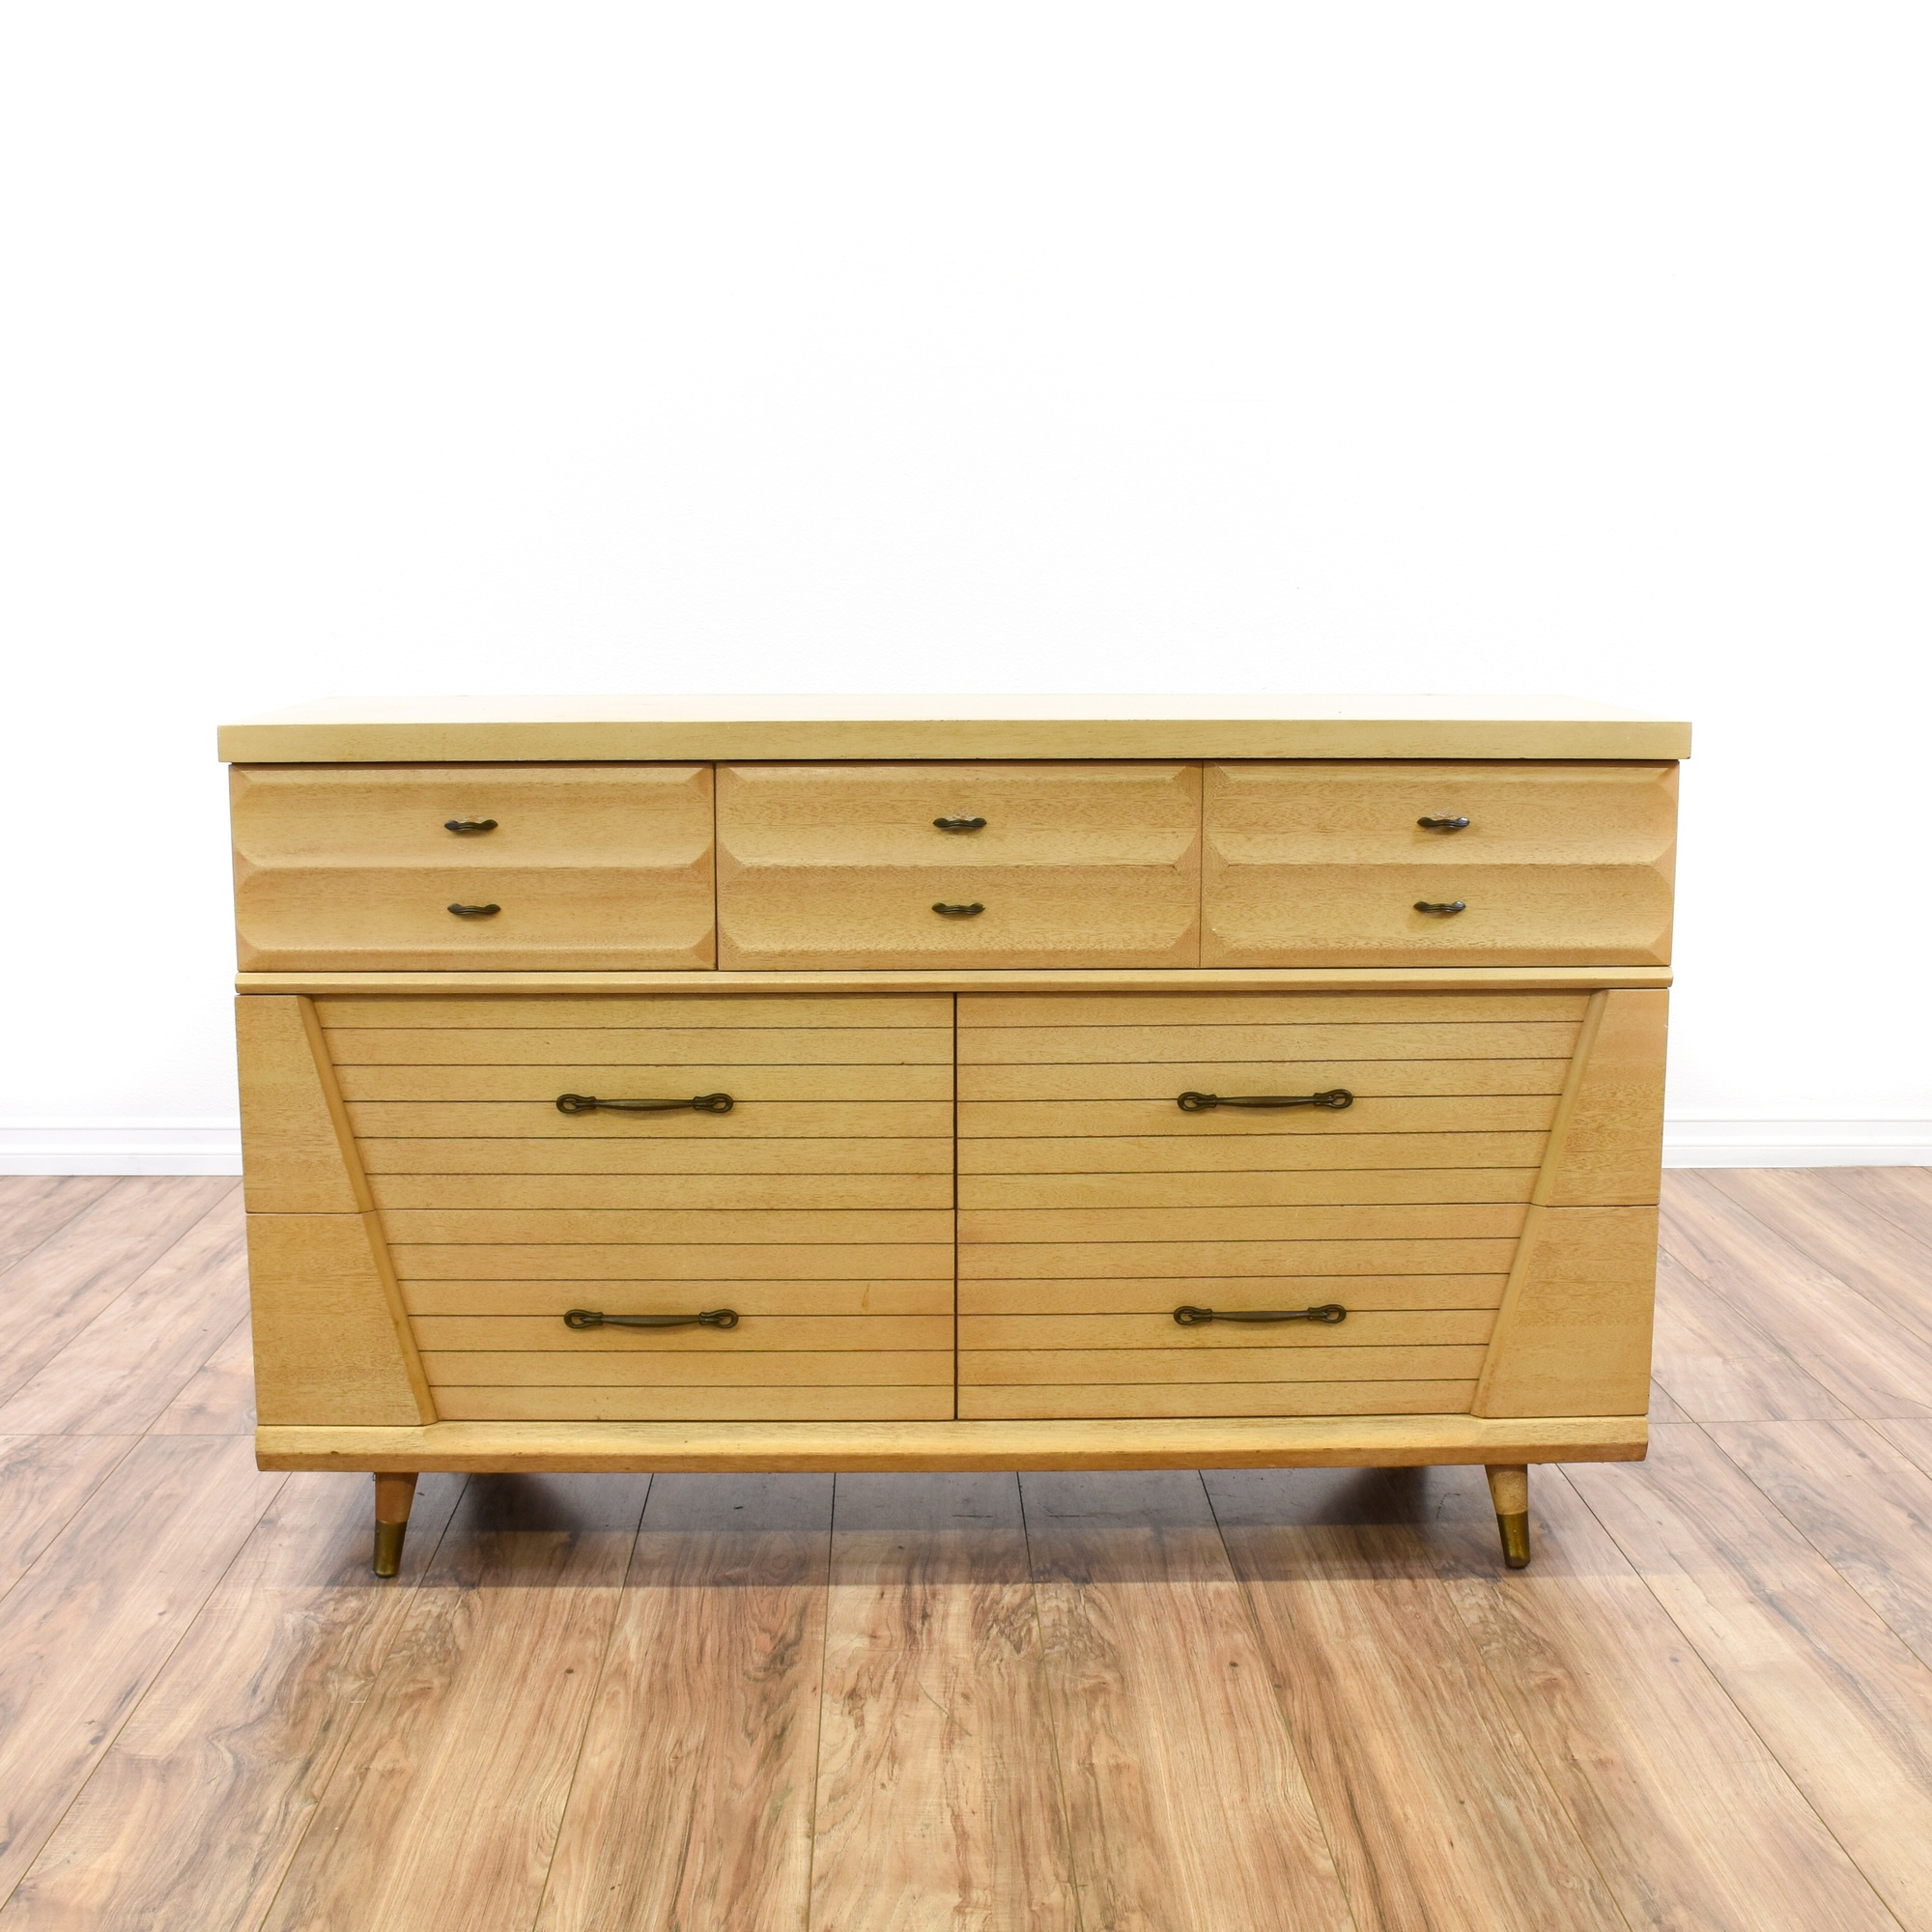 Harmony Furniture: Harmony House Furniture Dresser